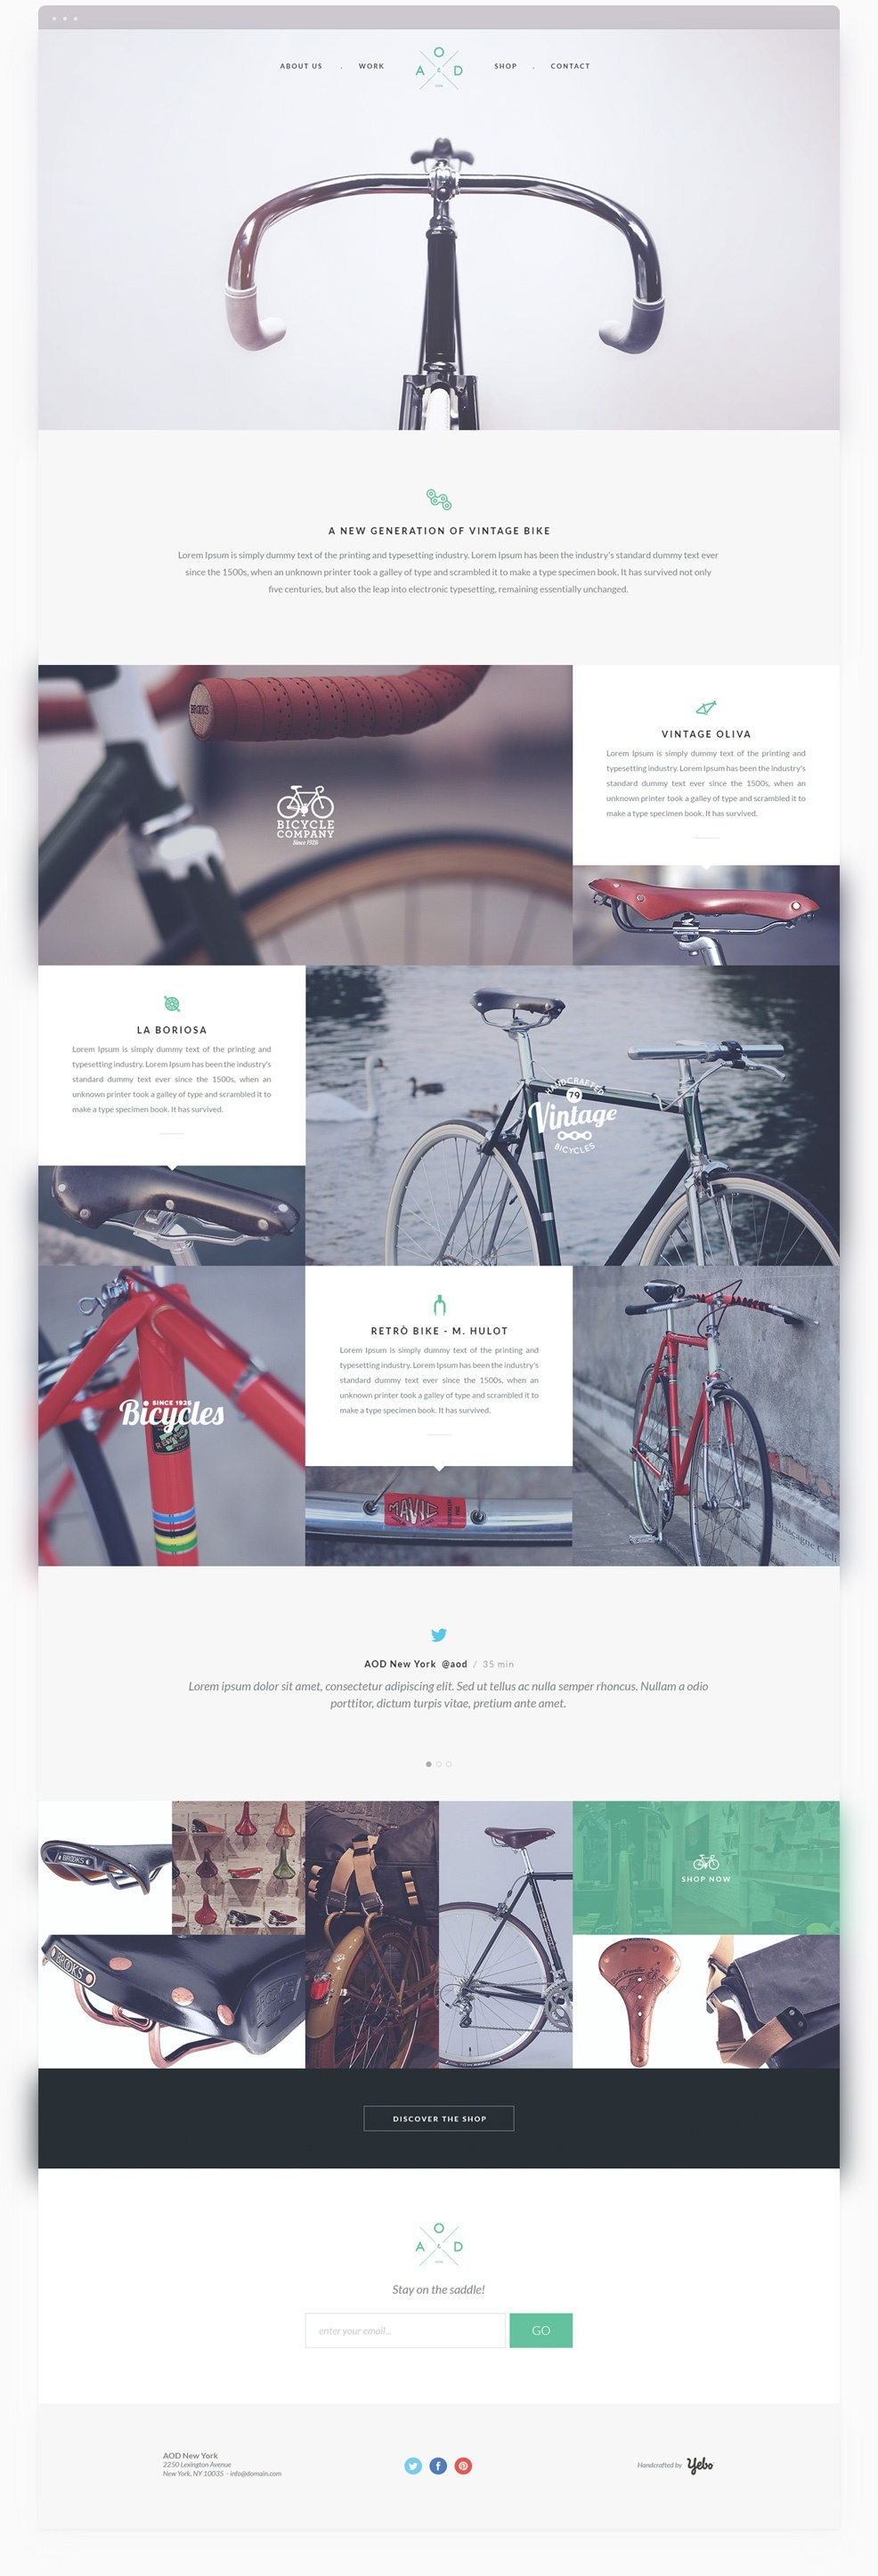 Yebo Bycicle Free PSD Template